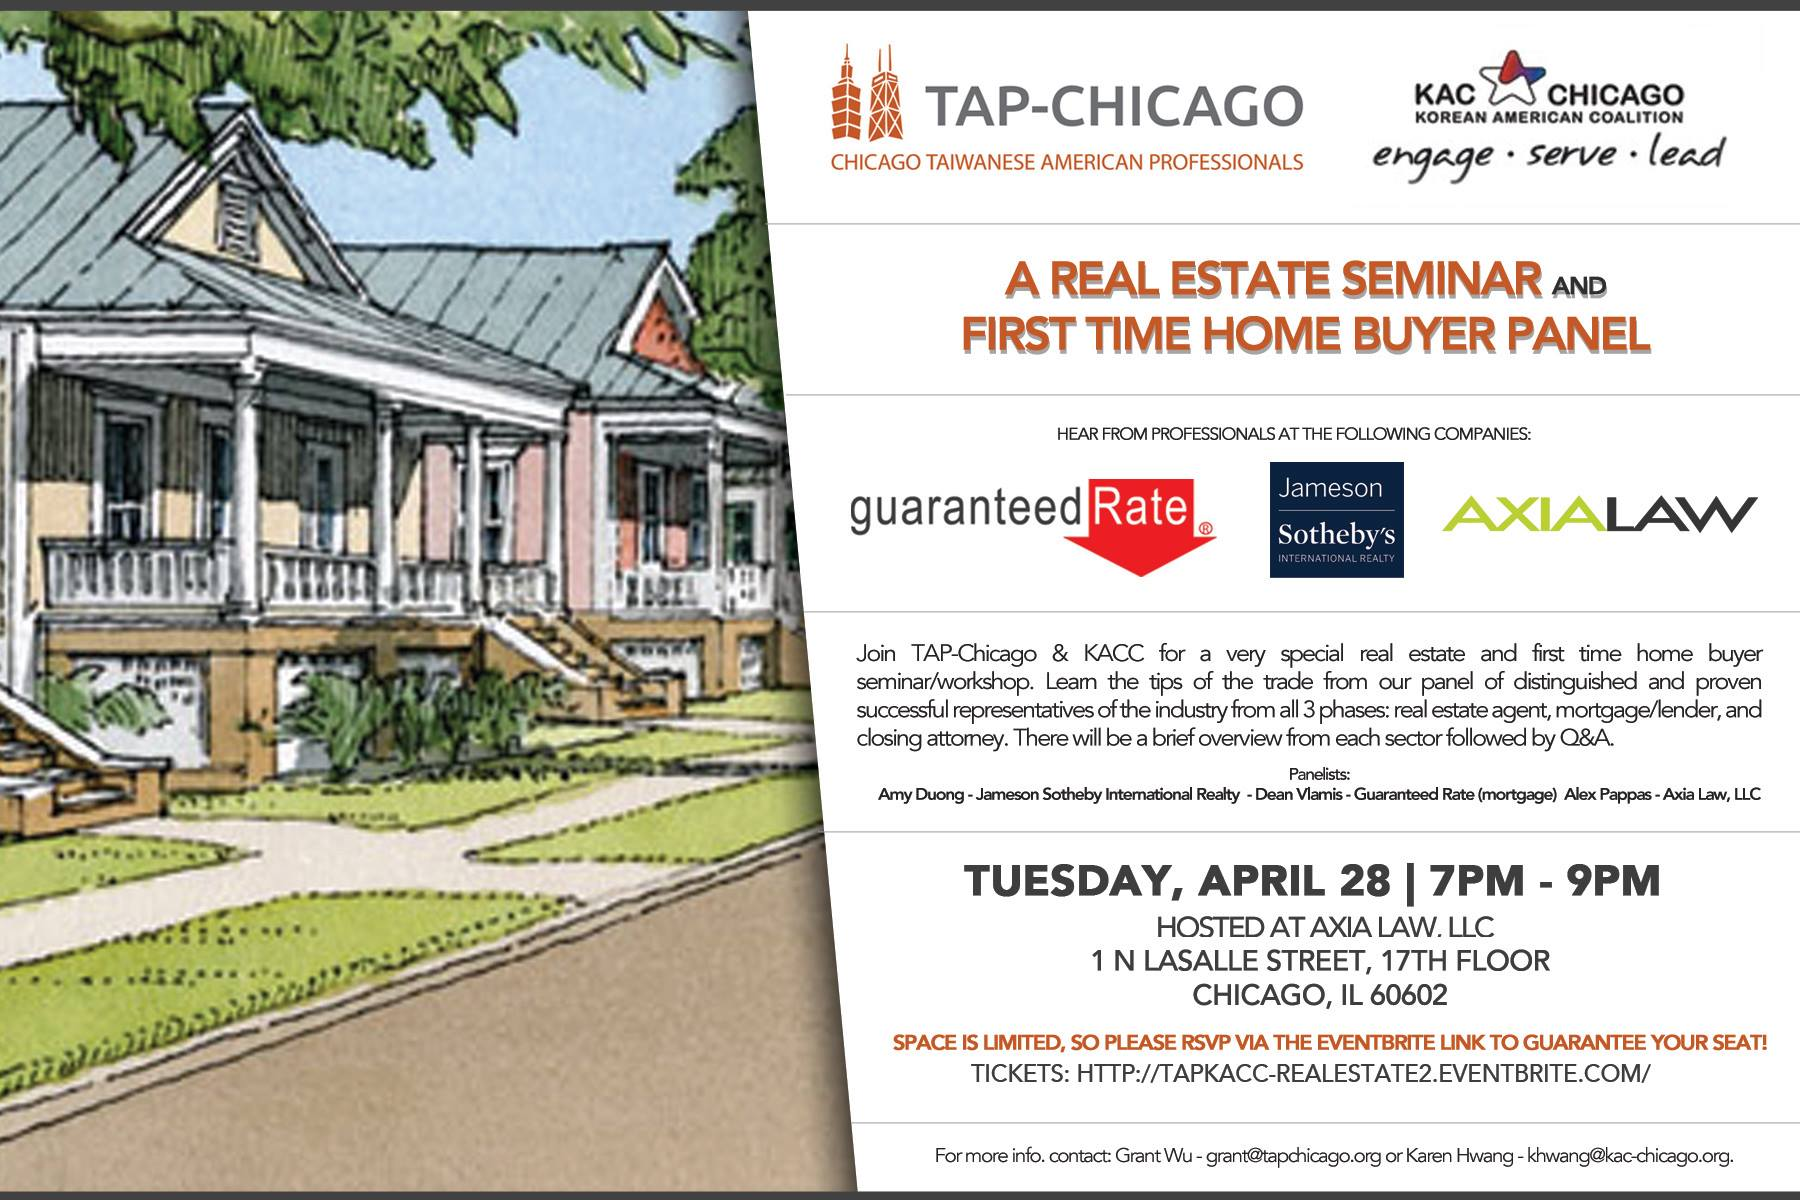 Real Estate Seminar First Time Home Buyer Panel